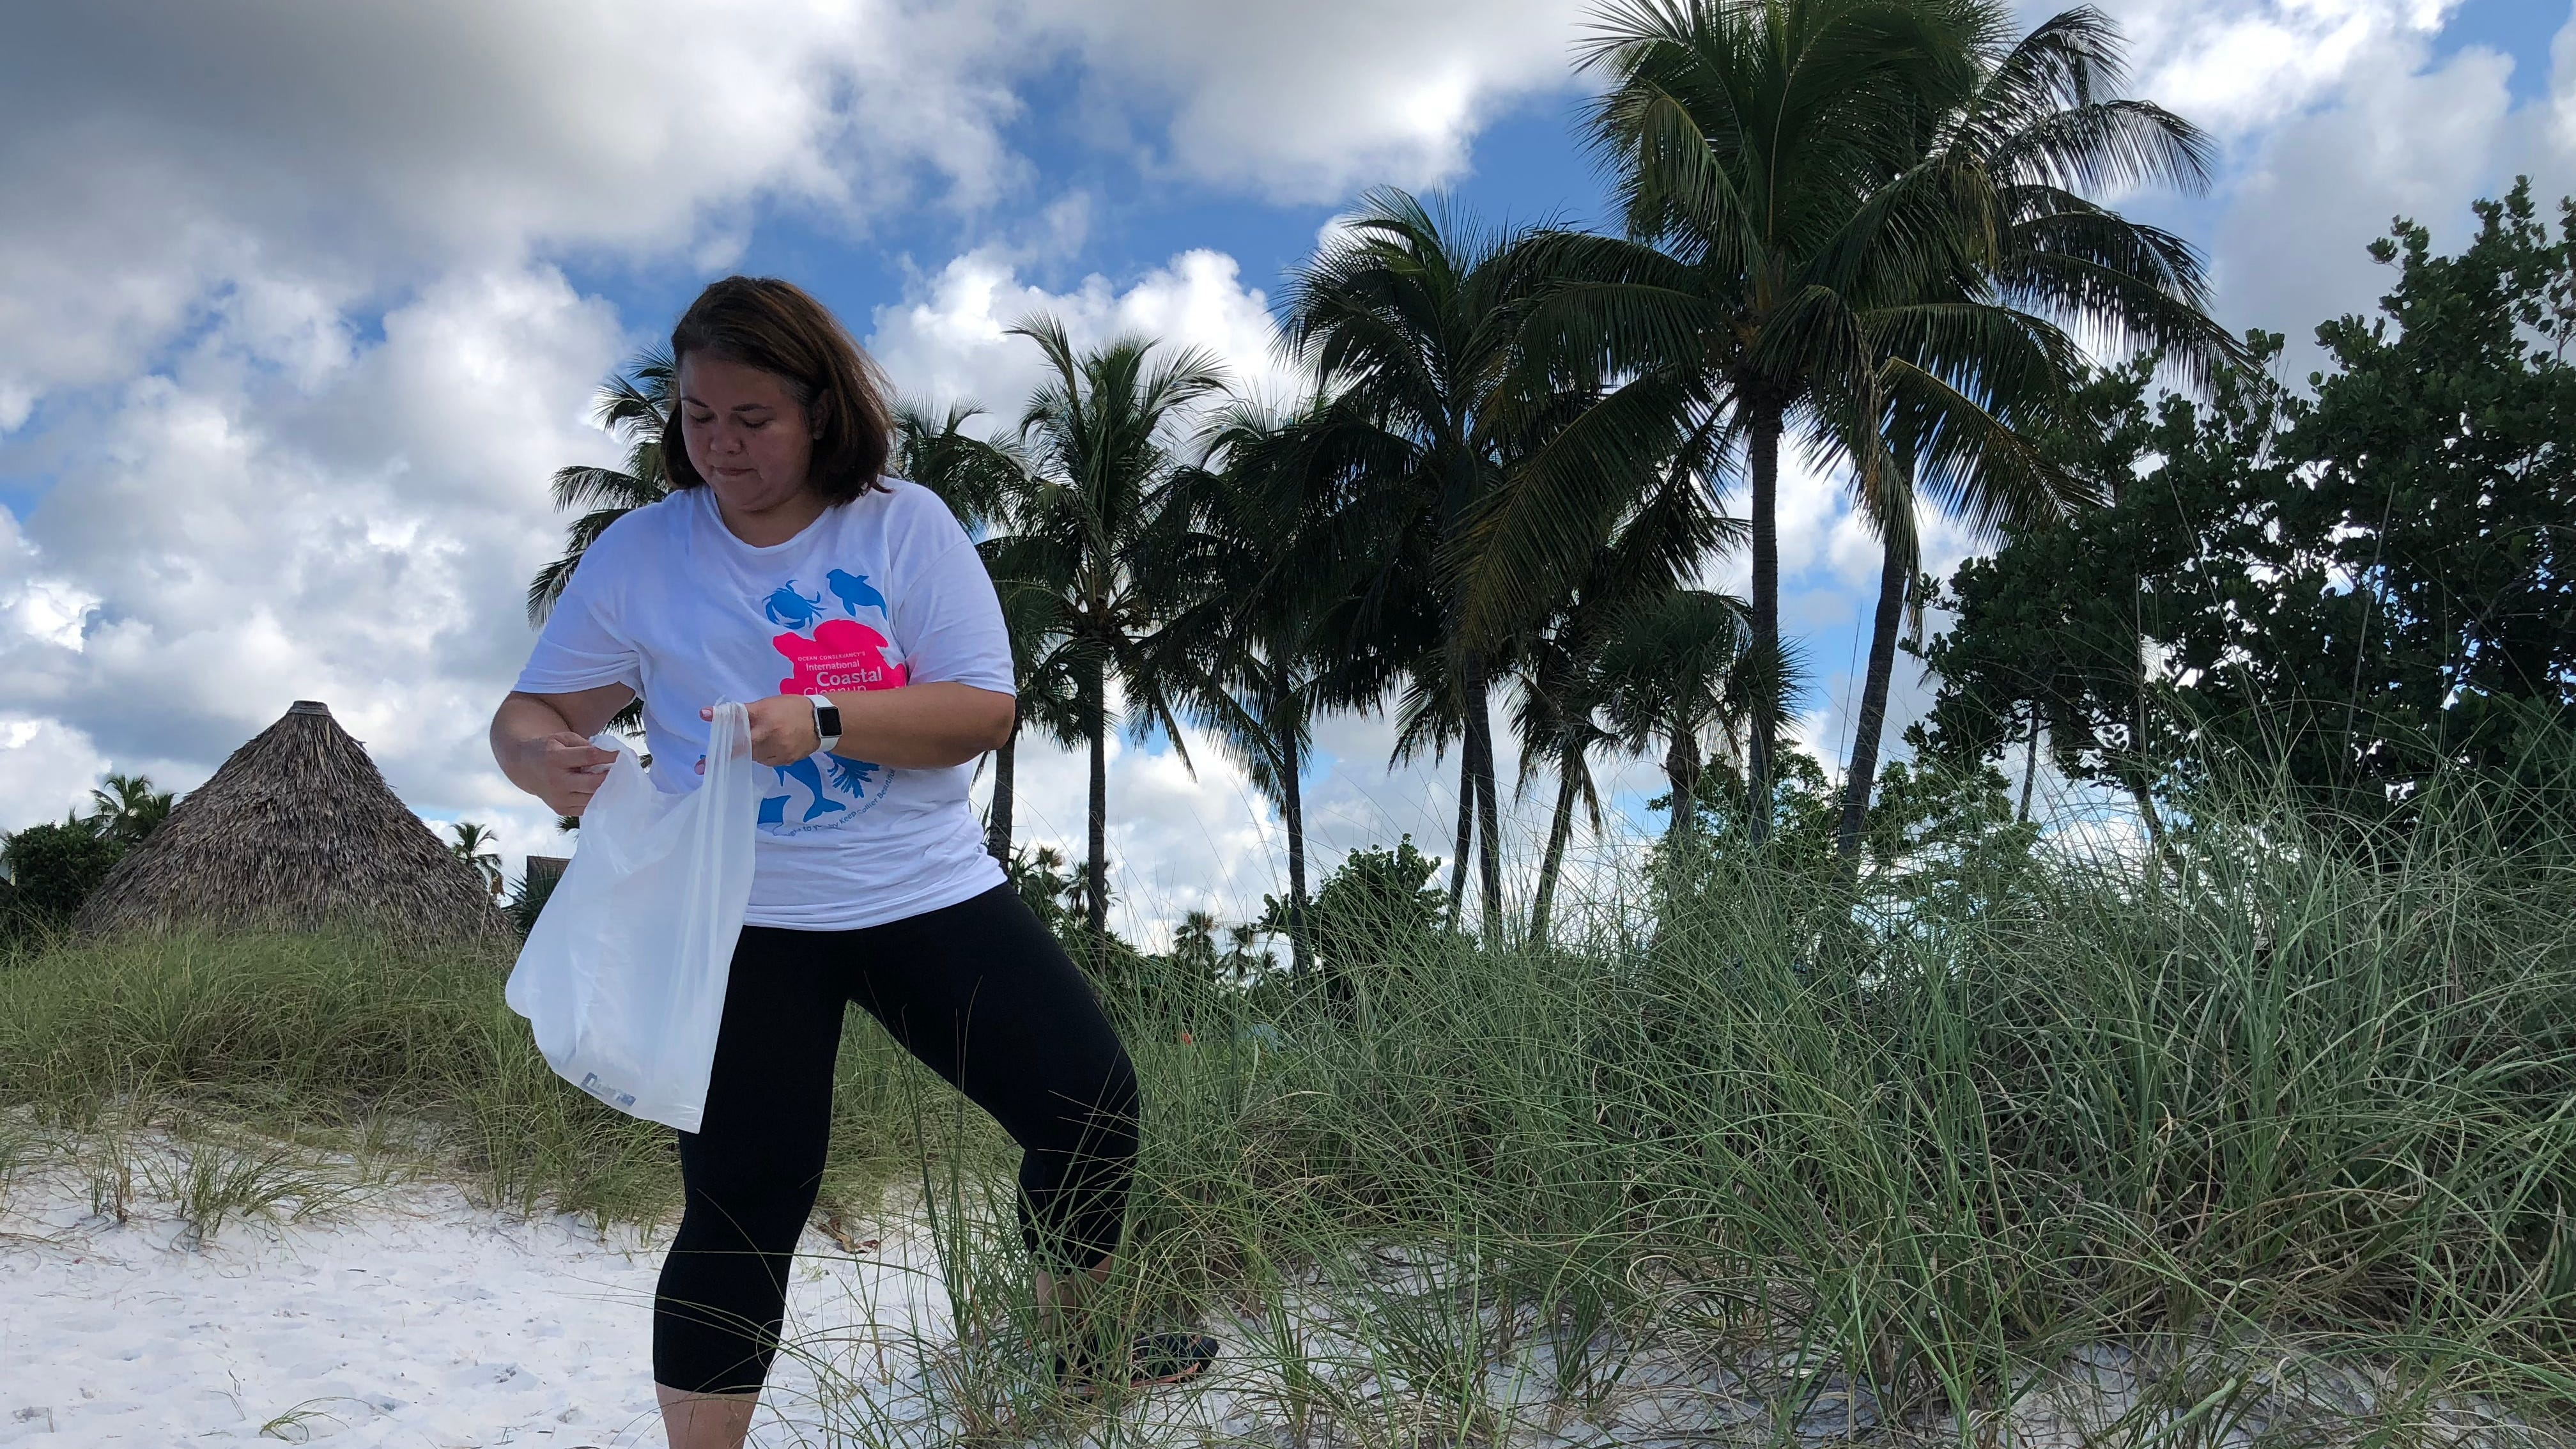 Volunteers, including about 120 Florida SouthWestern State College students, helped clean up shores and waterways at various sites, organizers said.